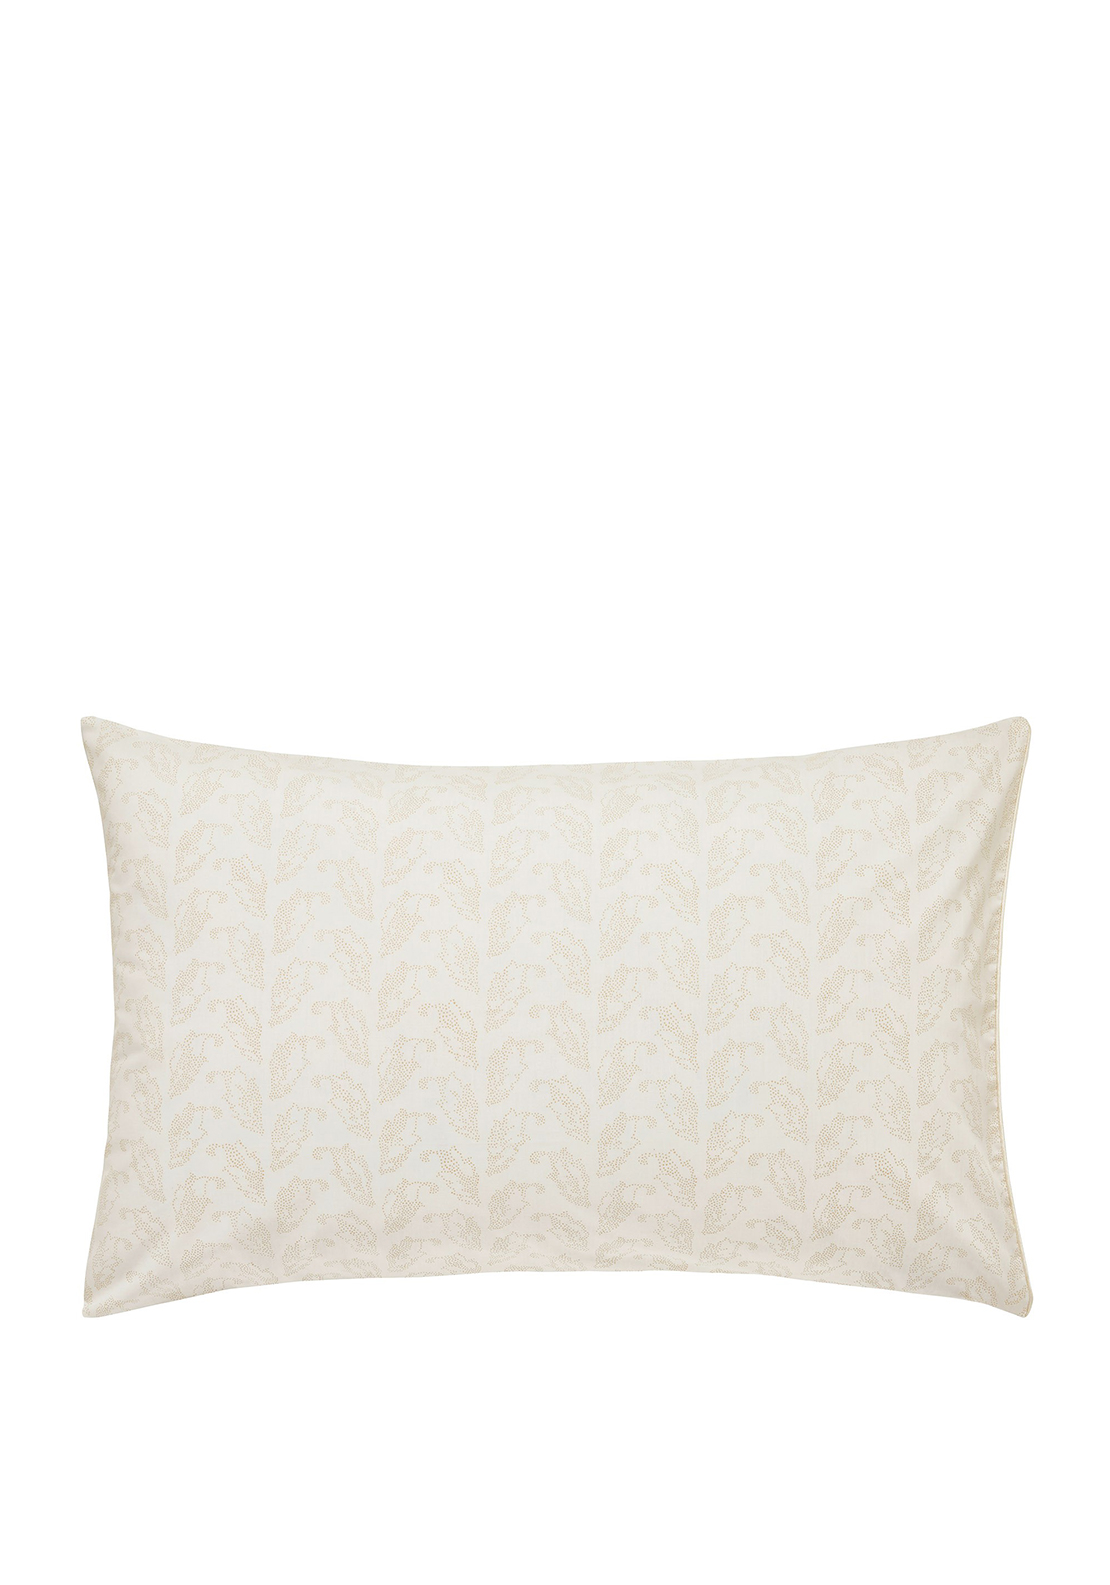 Sanderson Floriella Pillow Covers Cream